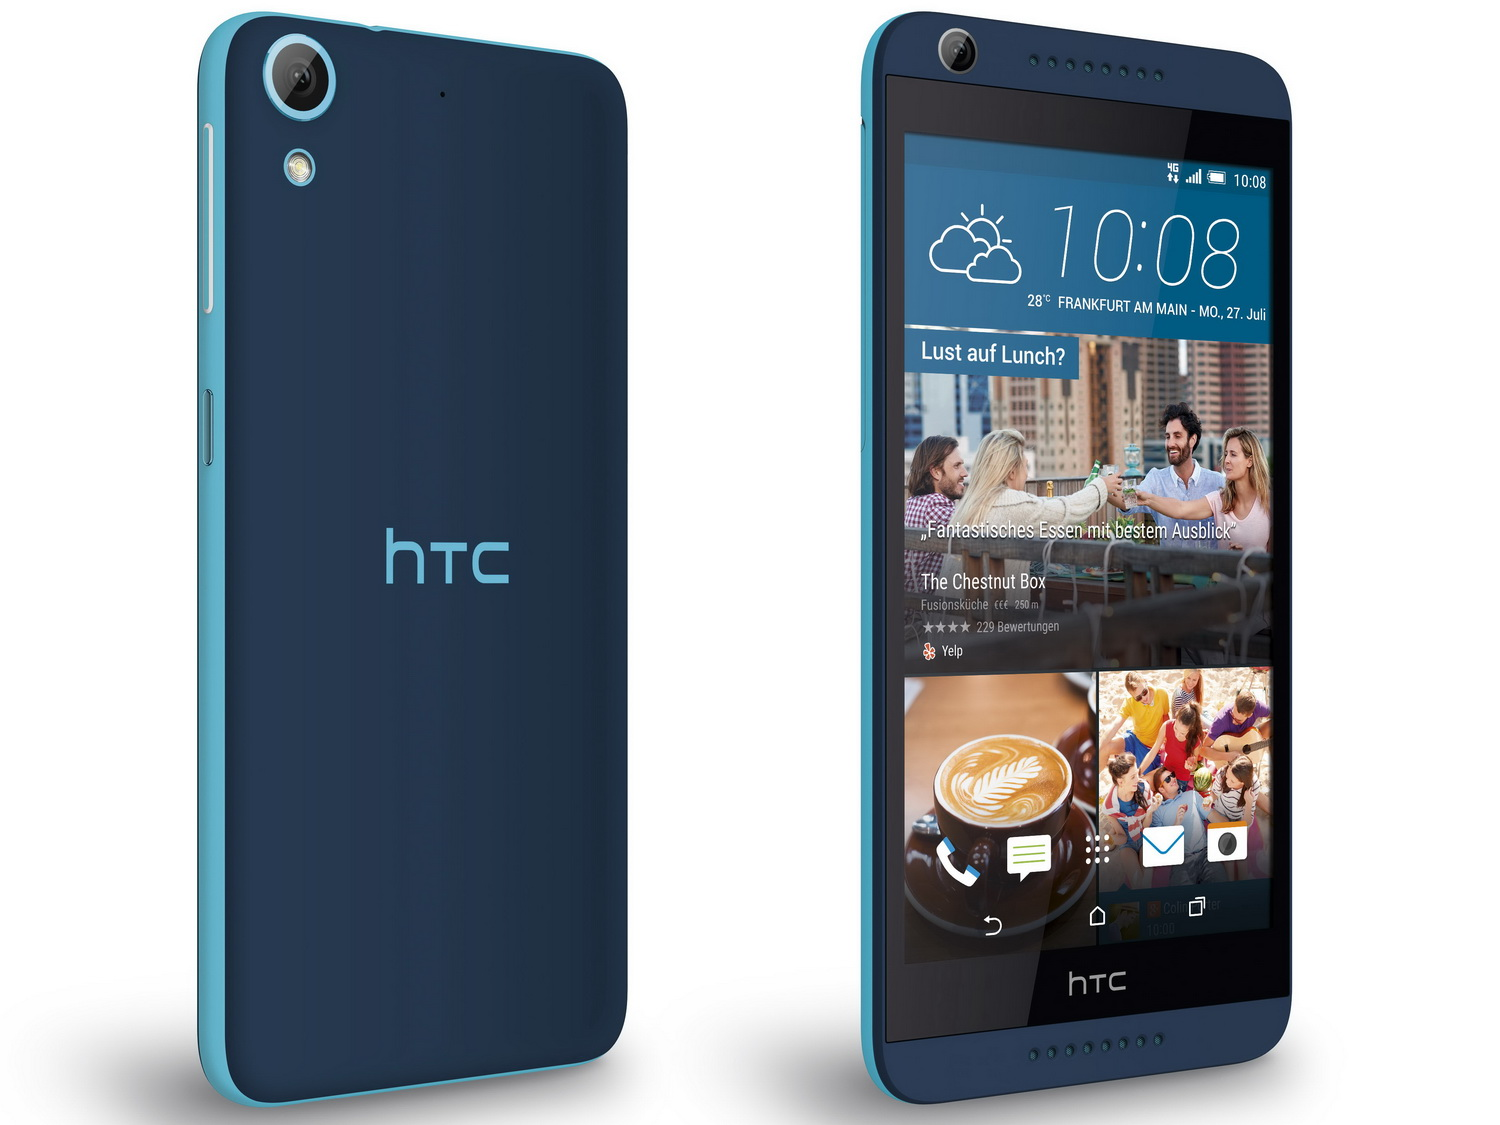 Htc Desire 626 Coming This August For 300 Euros